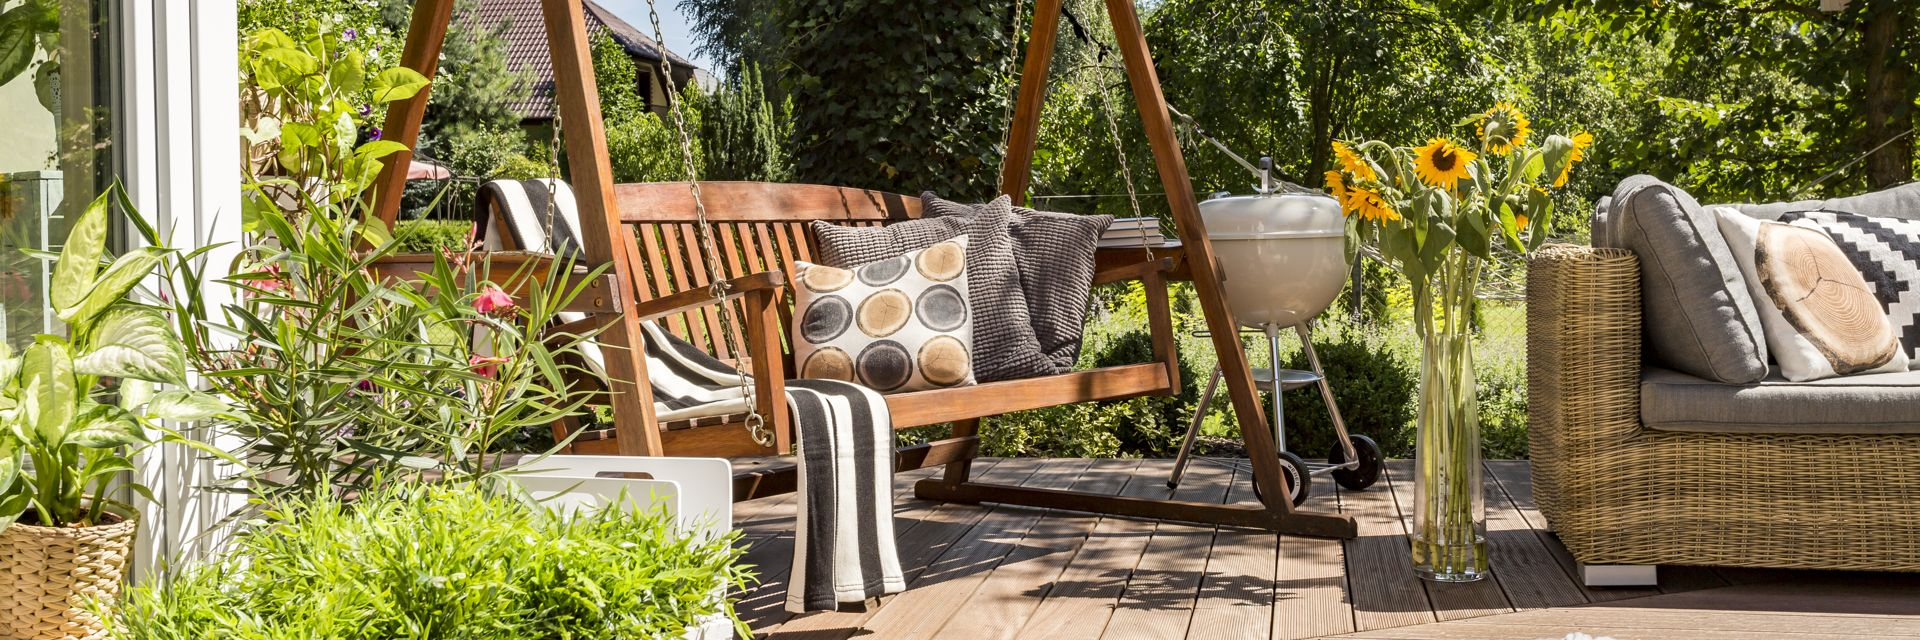 4 Ways Your Outdoor Space Can Improve Your Health 6